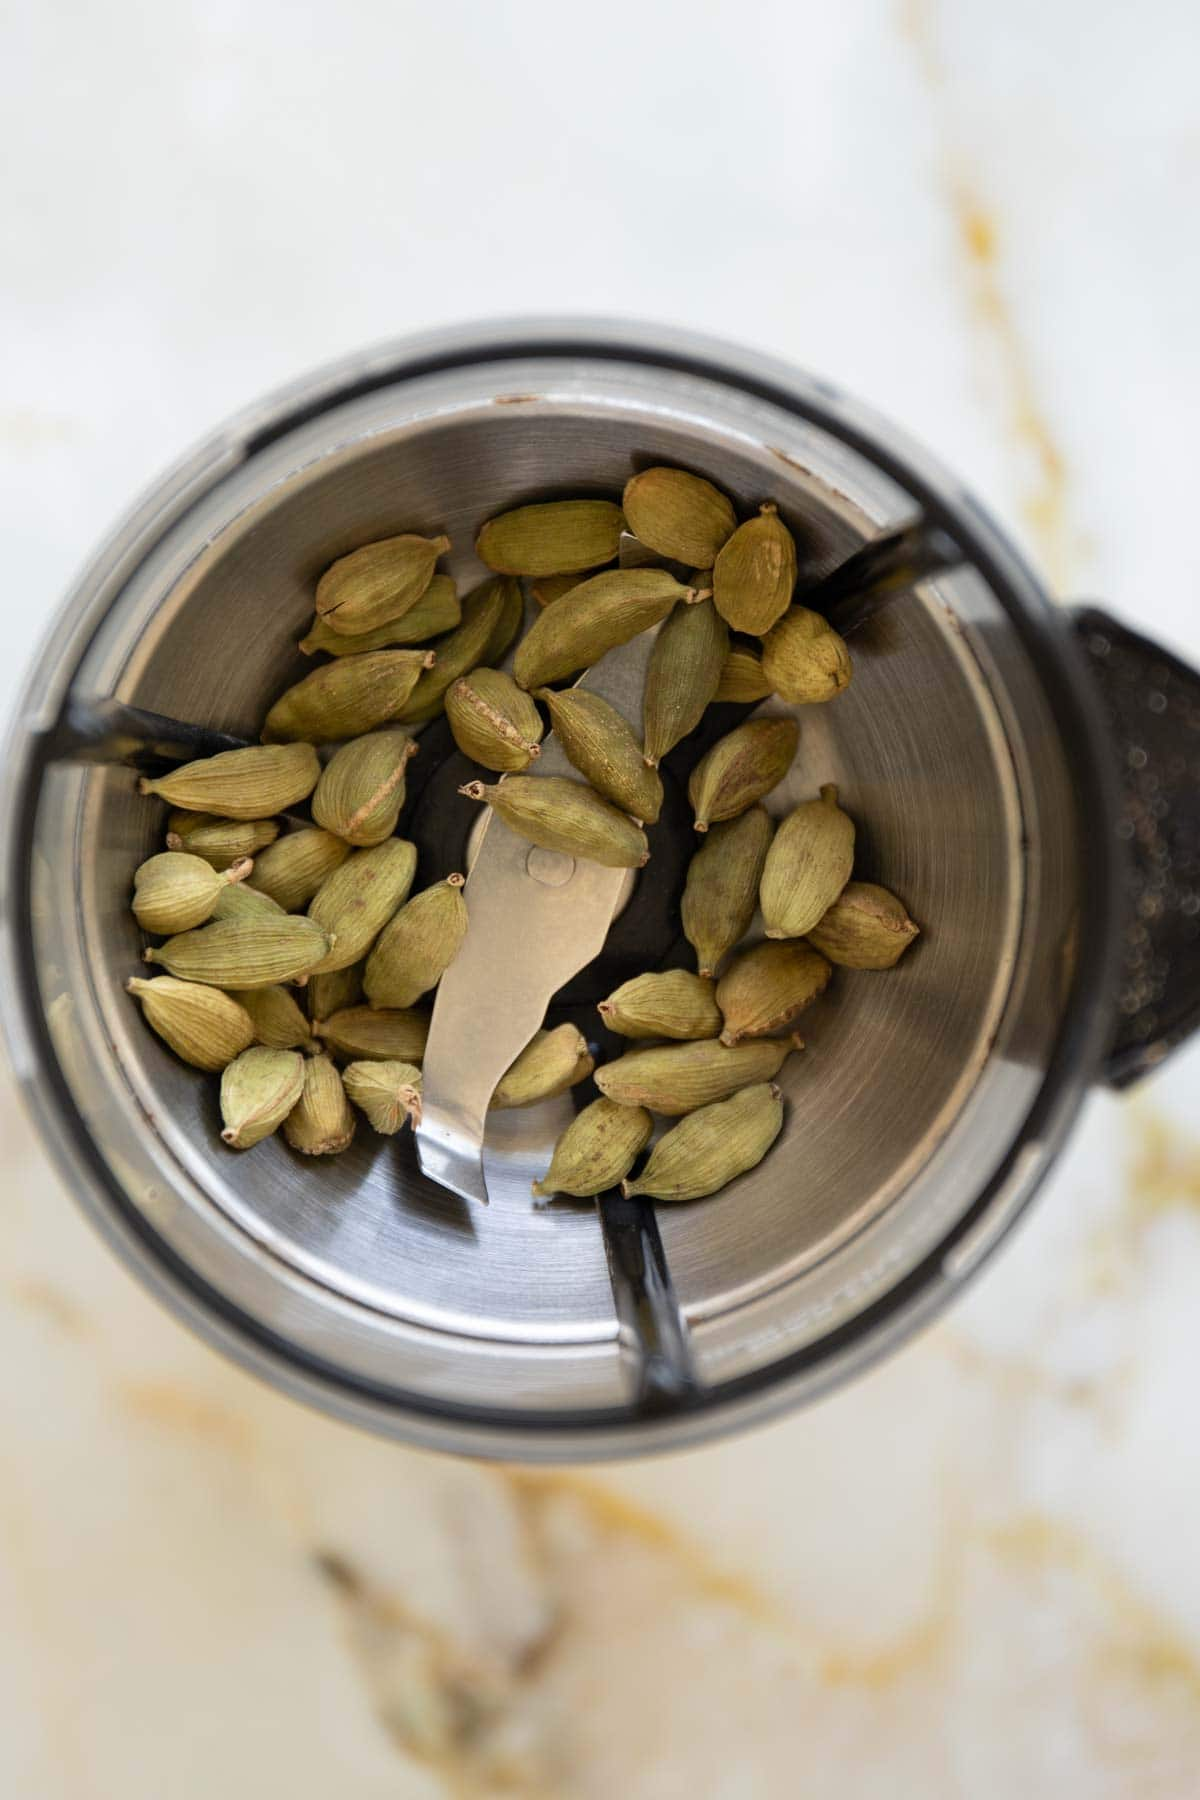 whole cardamom pods in a spice grinder